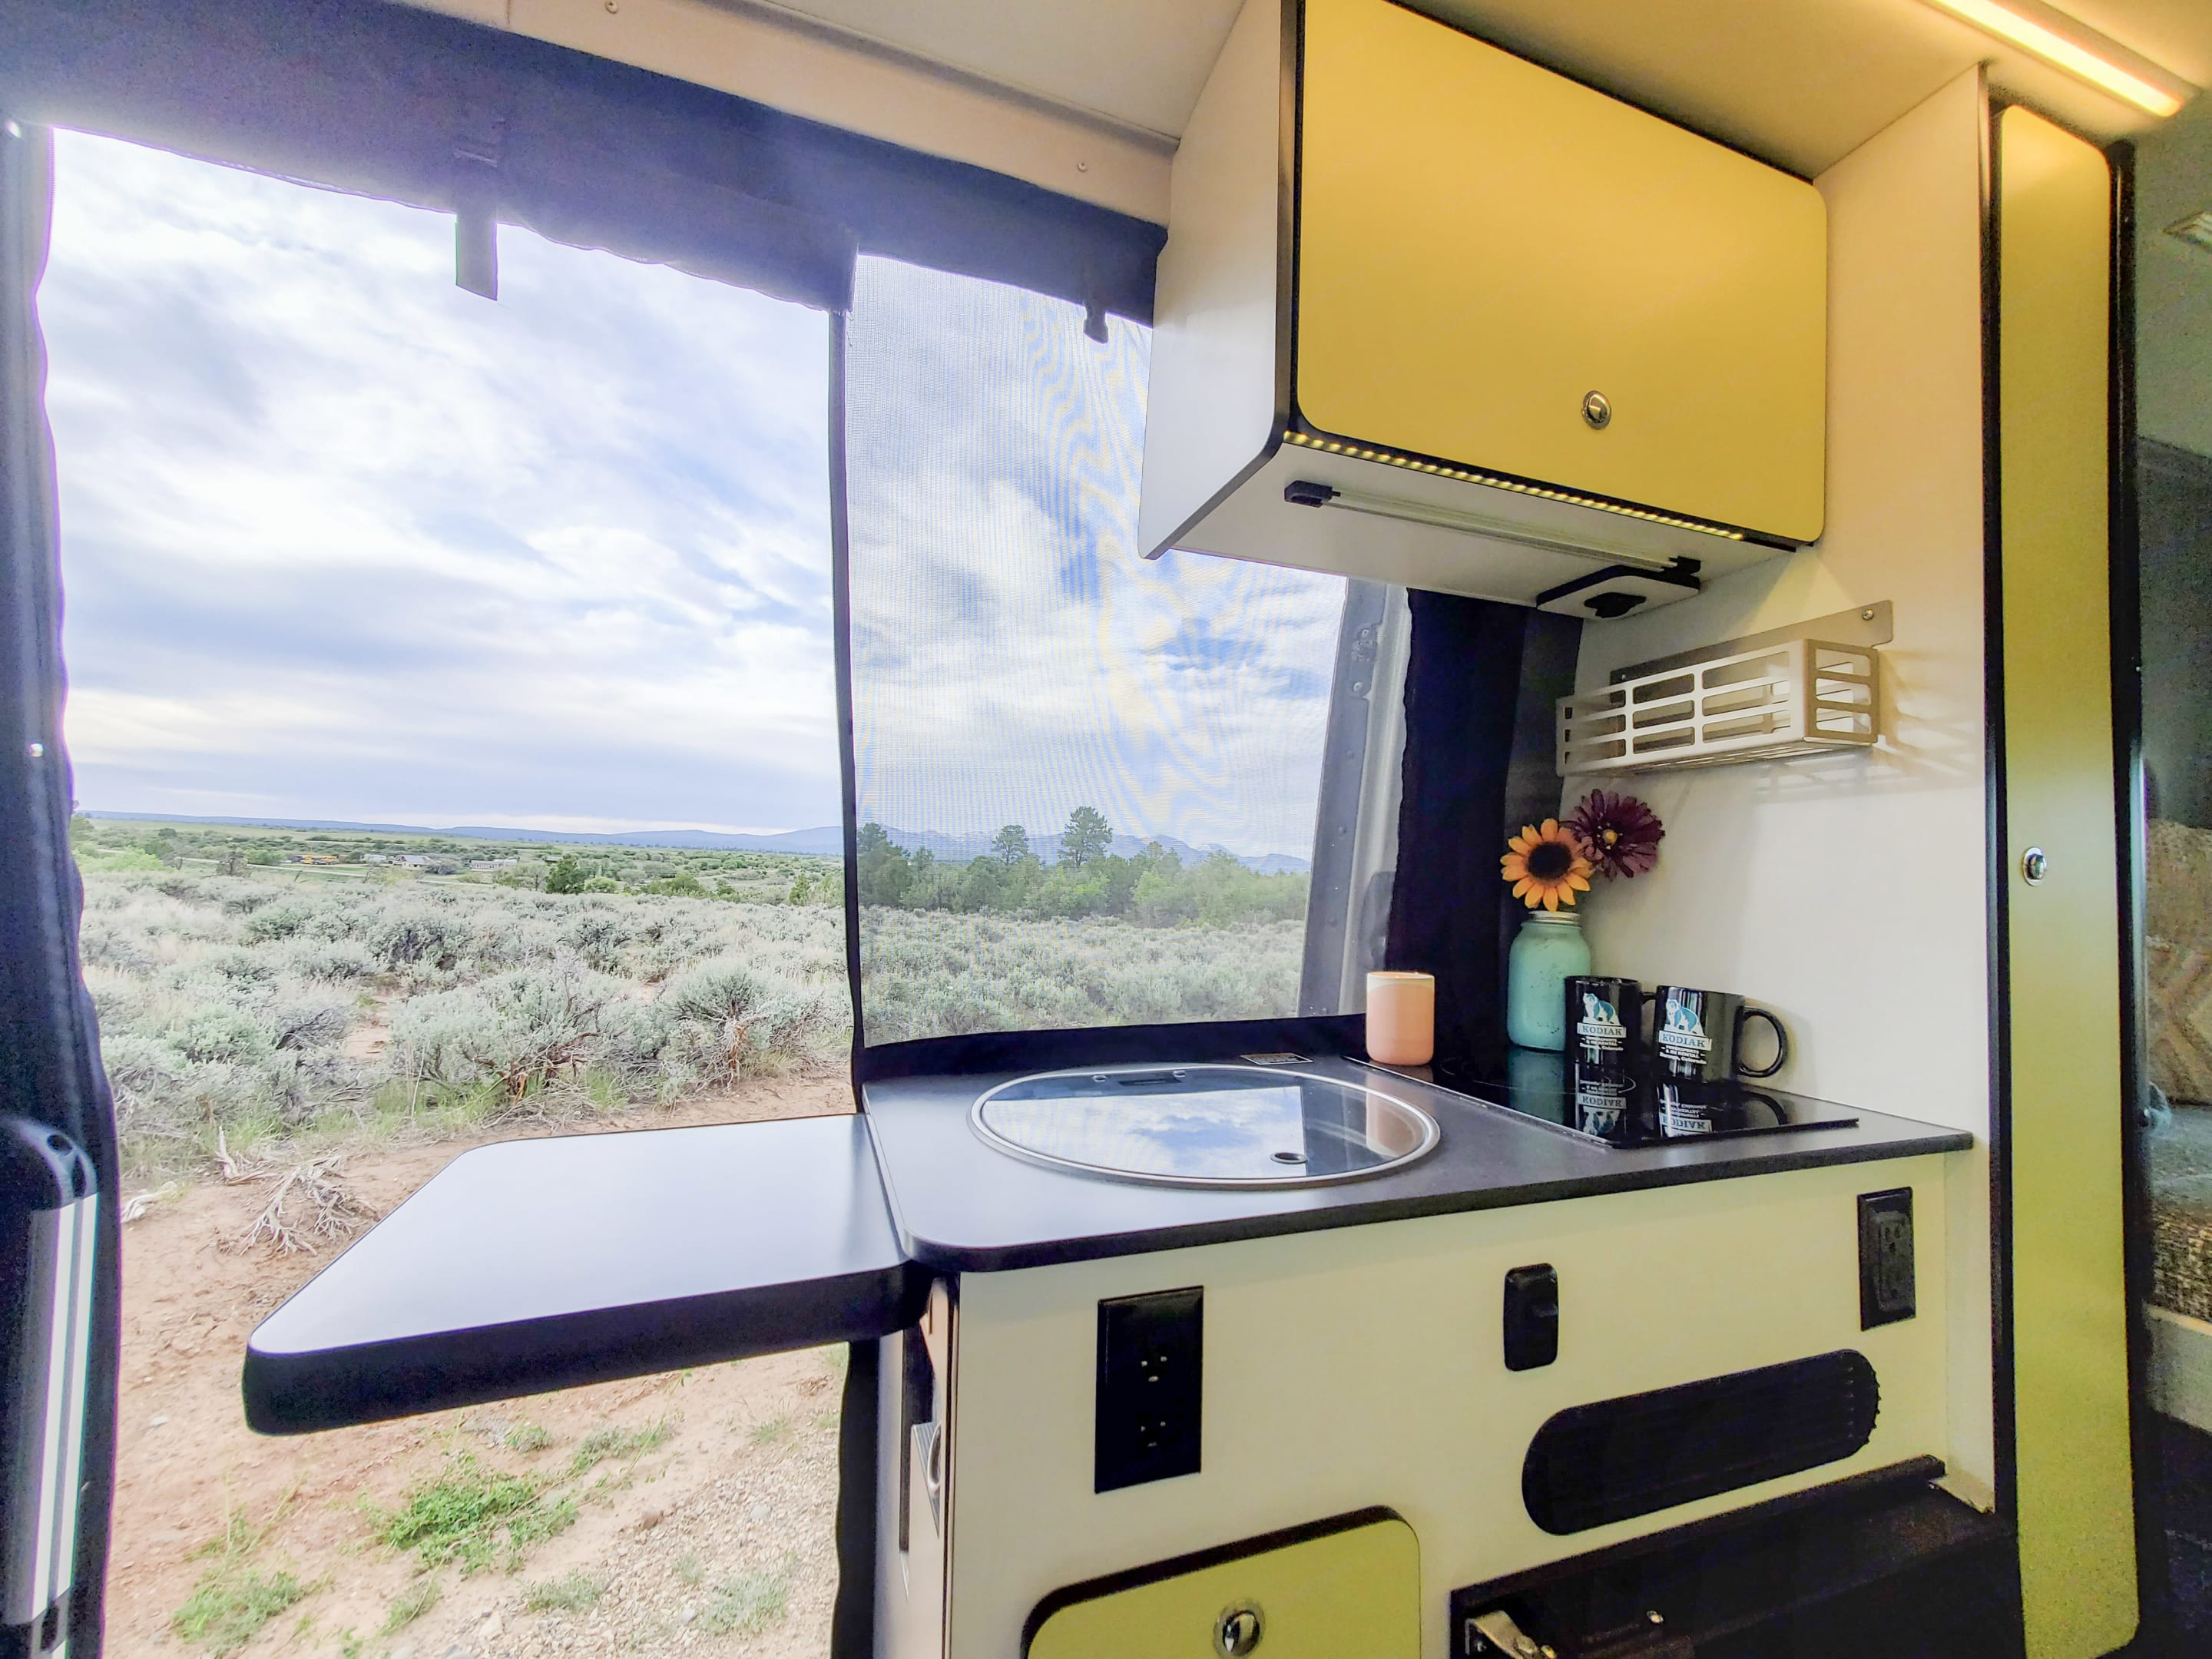 Kitchen area with sink, stove, and refrigerator. . Winnebago Revel 2020